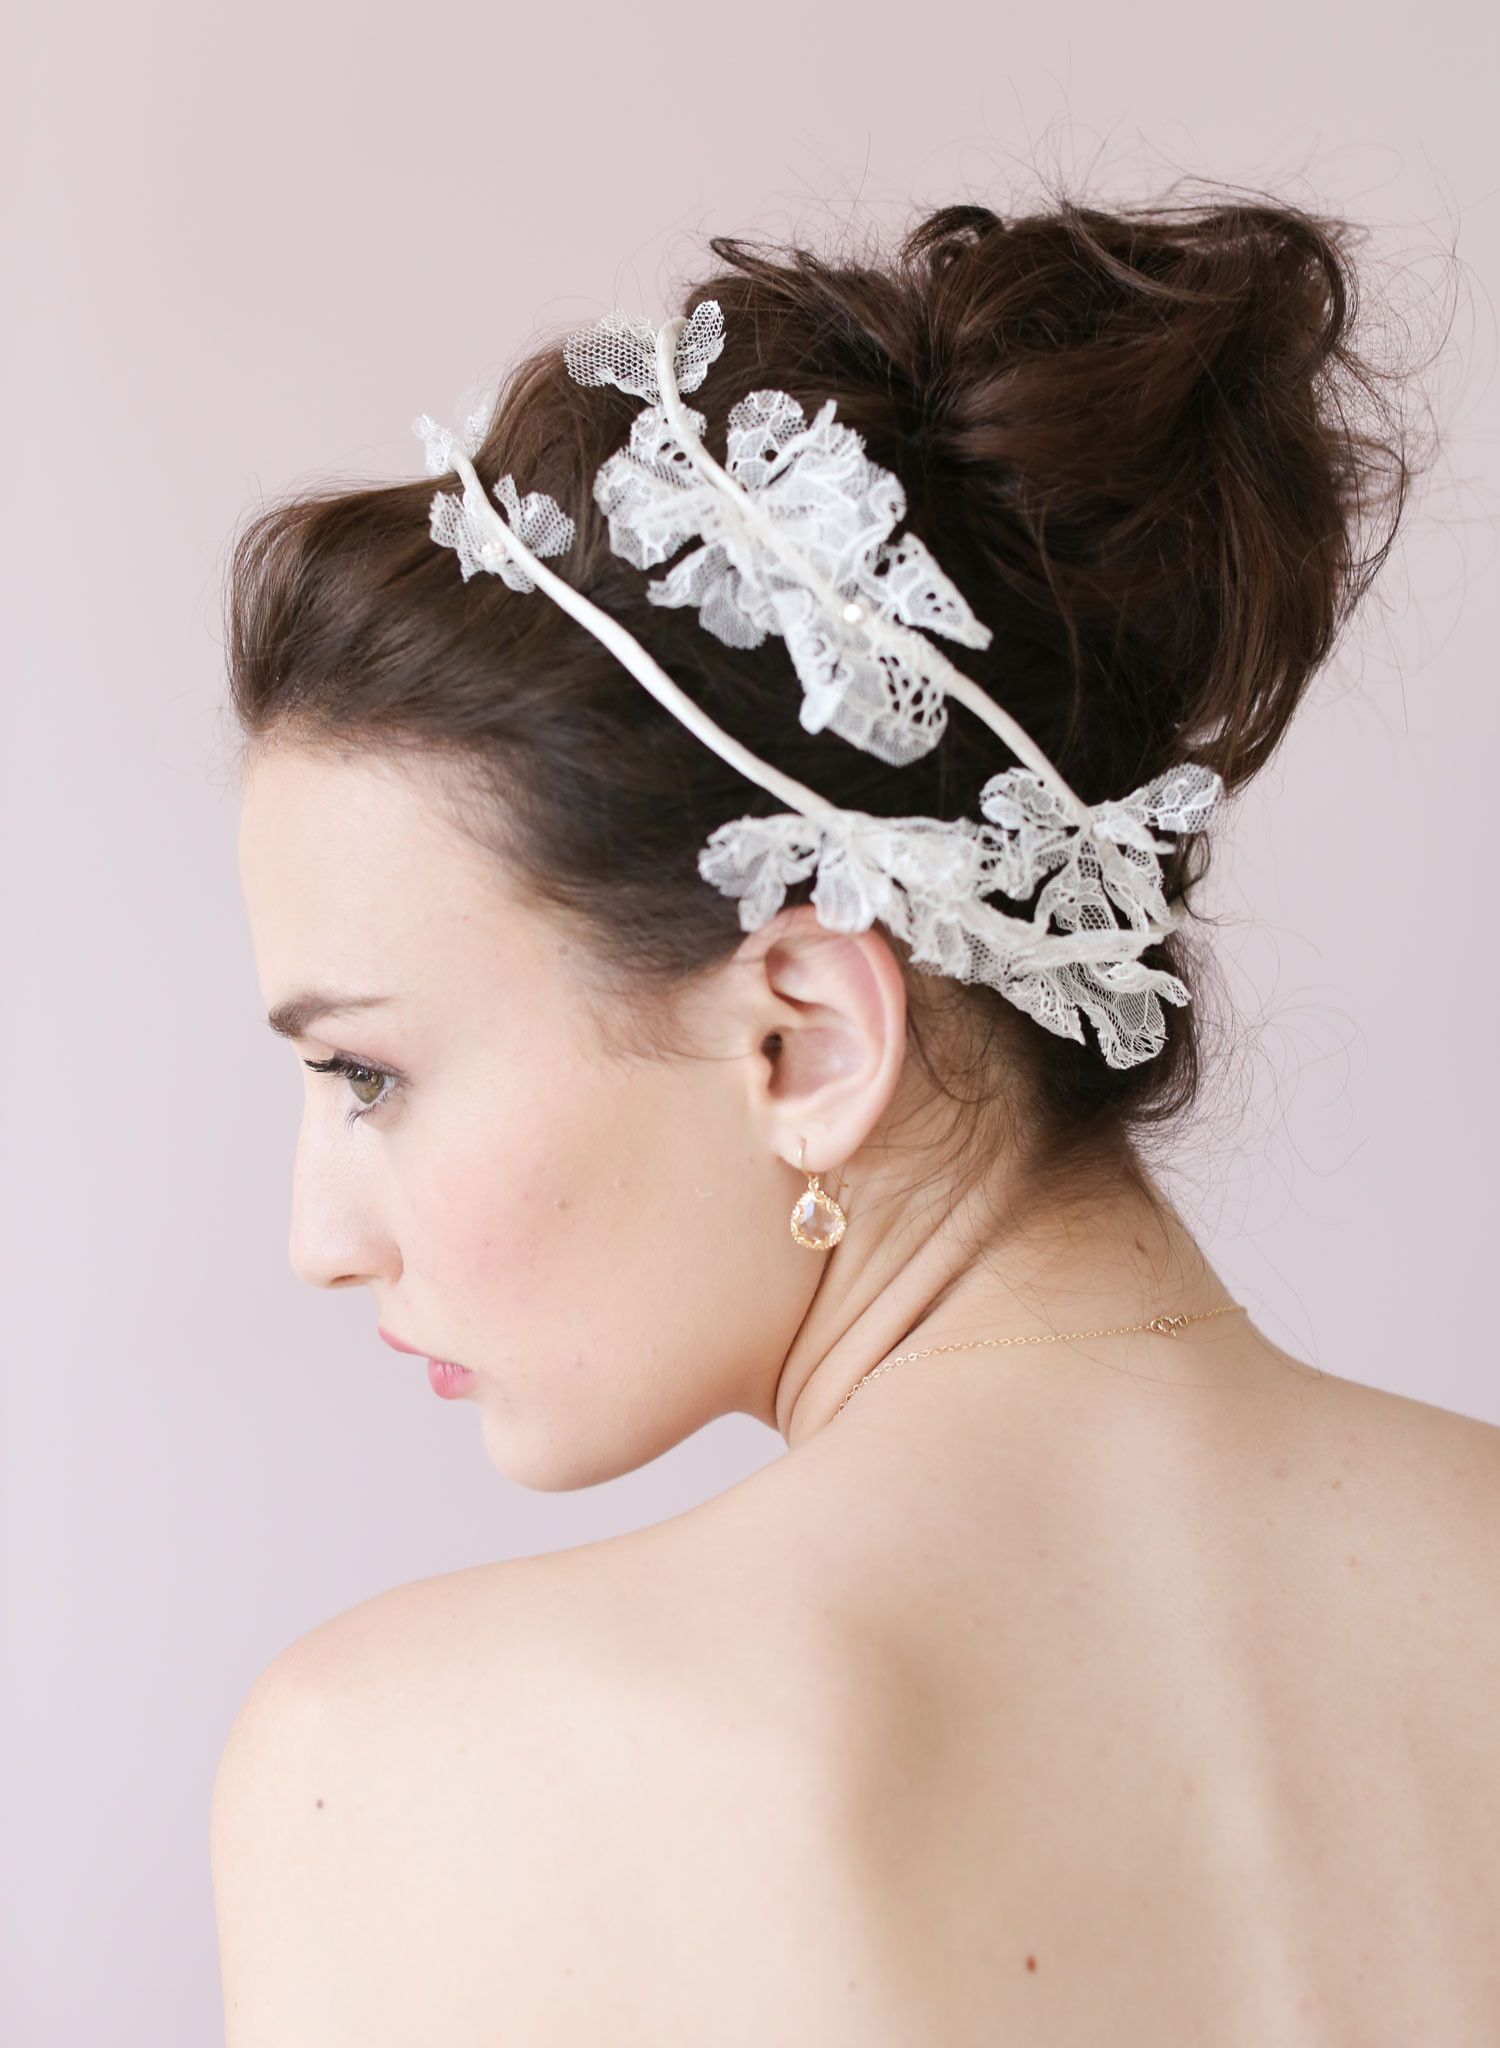 unveiled: 20 non-traditional veils for the modern bride via